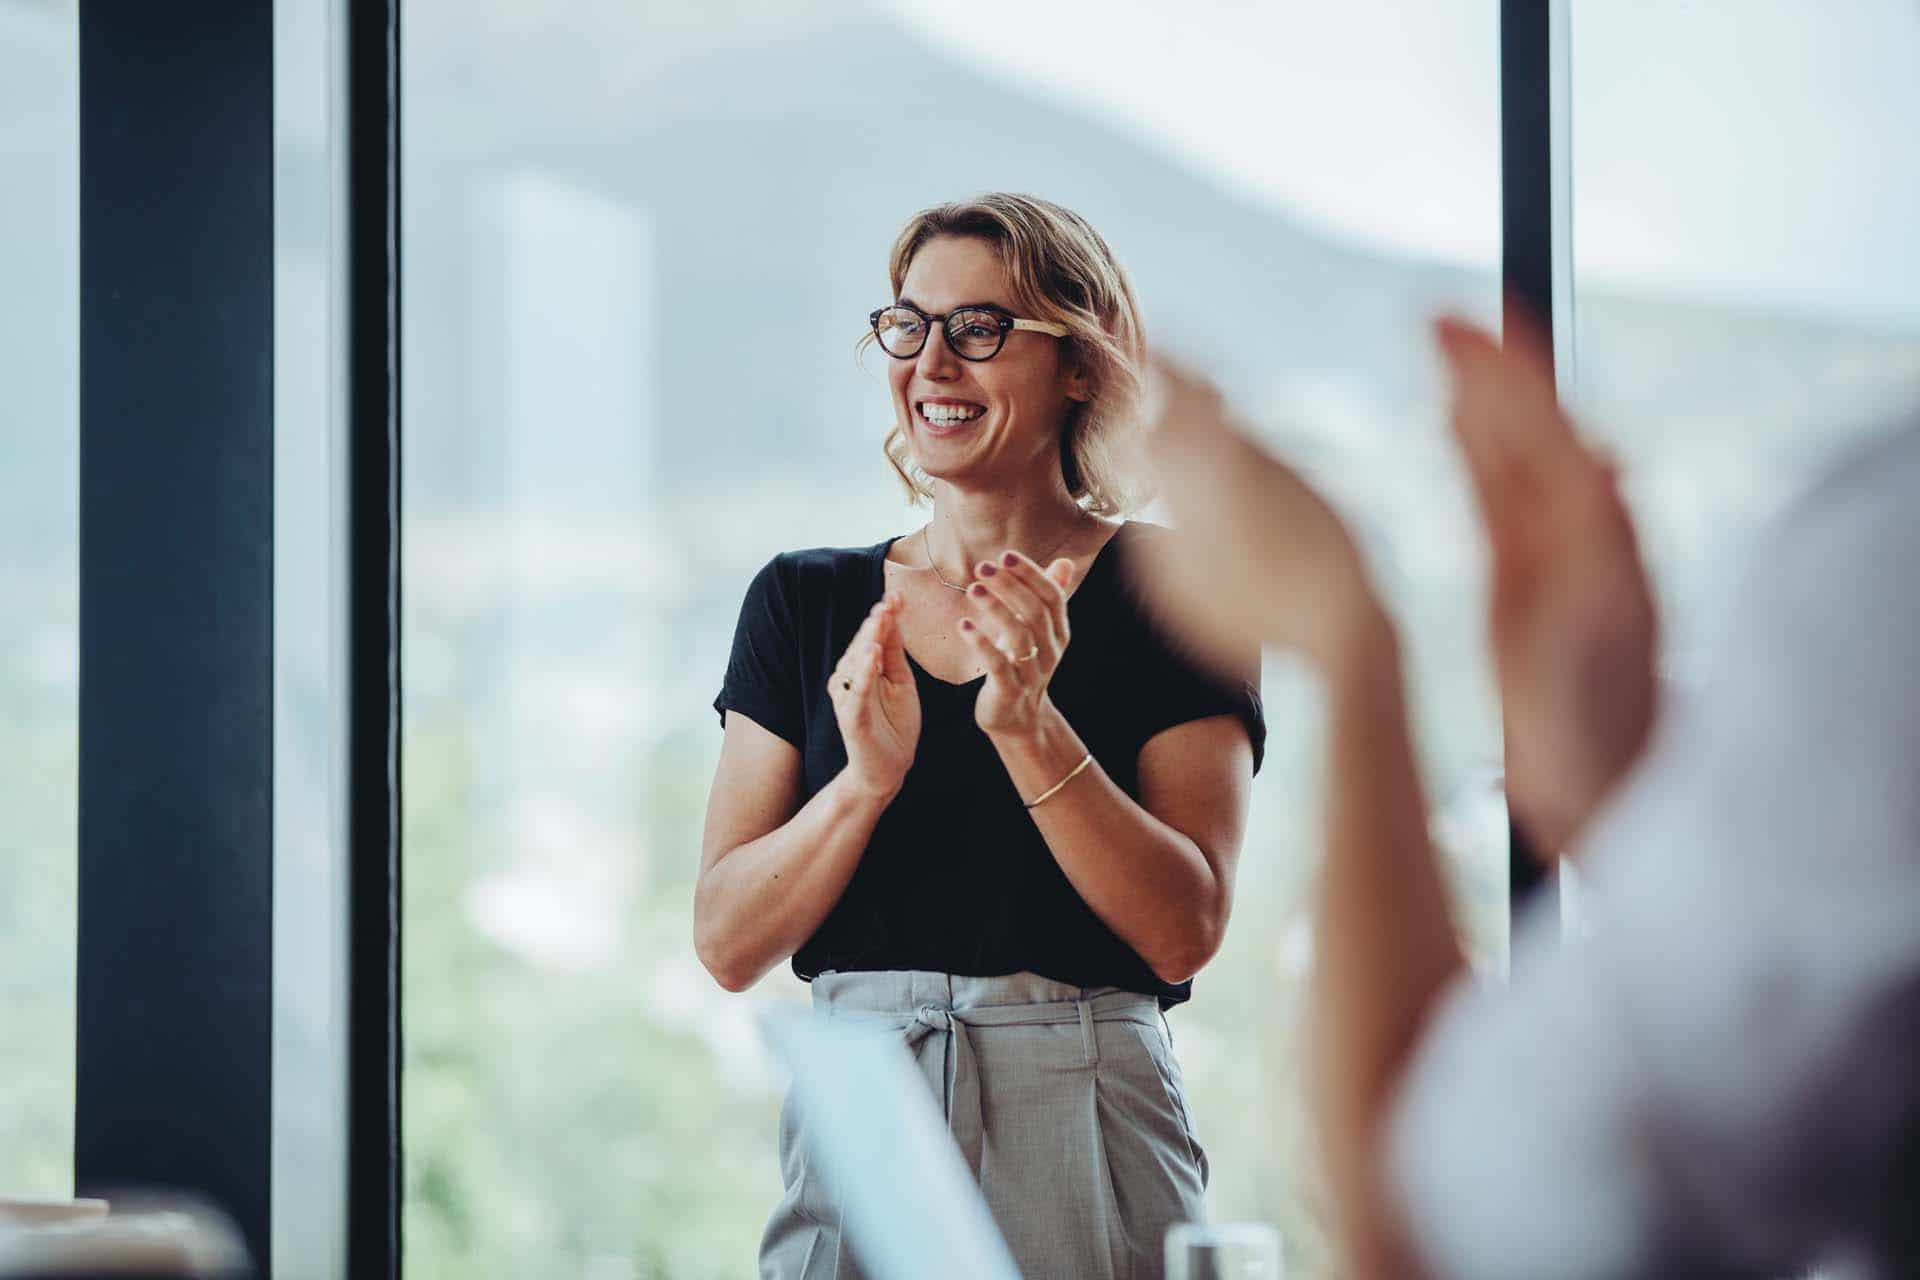 Businesswoman clapping hands after successful brainstorming session in boardroom. Business people women applauding after productive meeting.